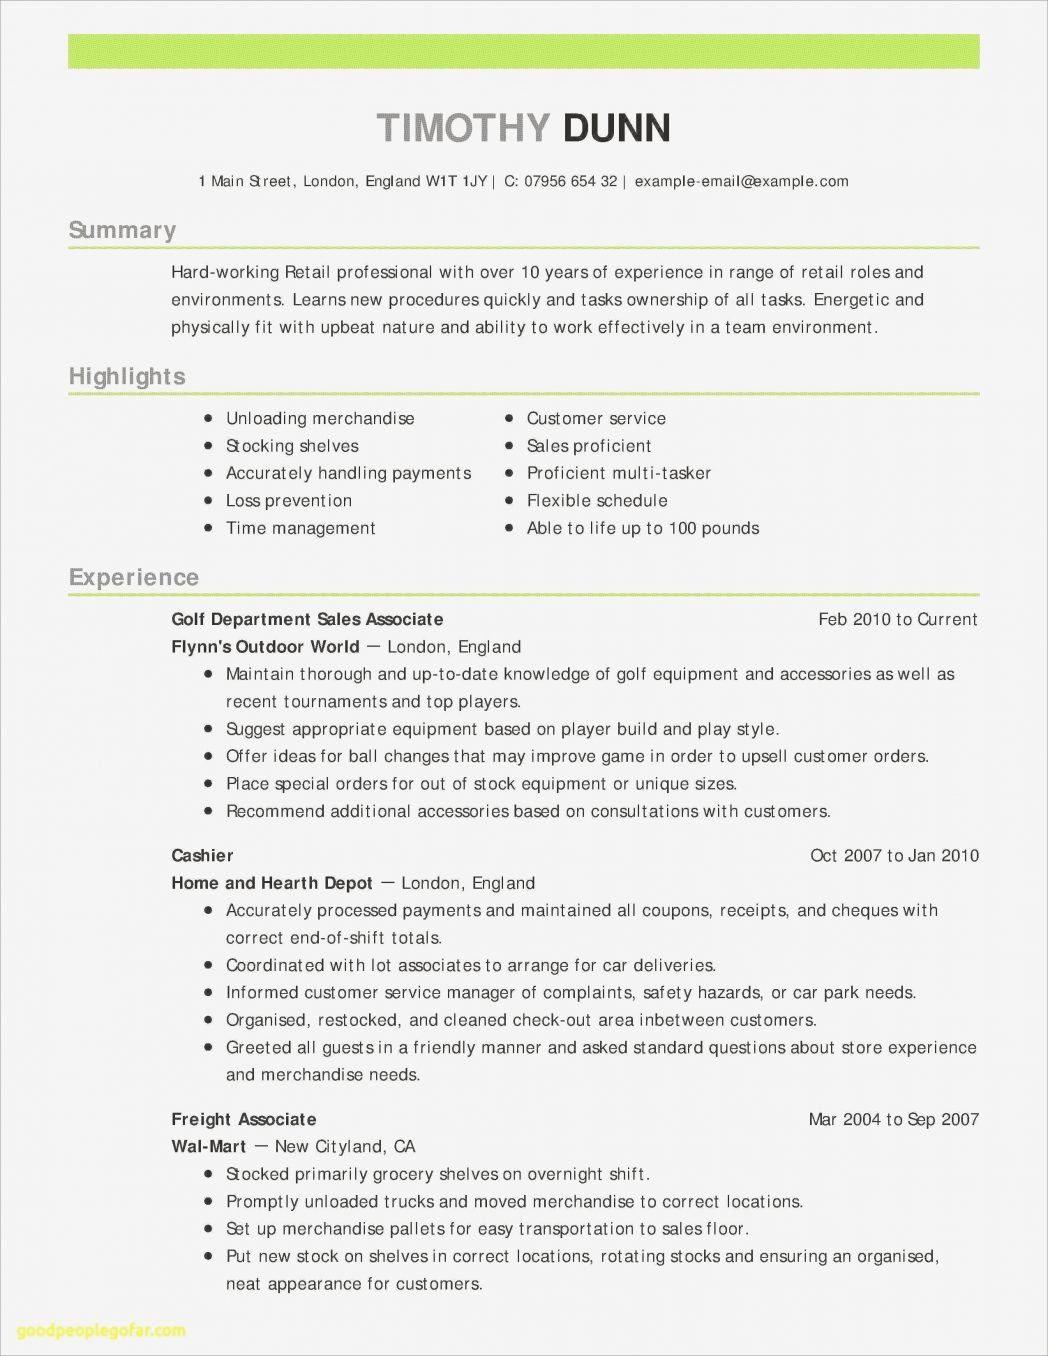 Skills For Acting Resume Fresh Hairstyles Professional Examples Stunning Format Skills